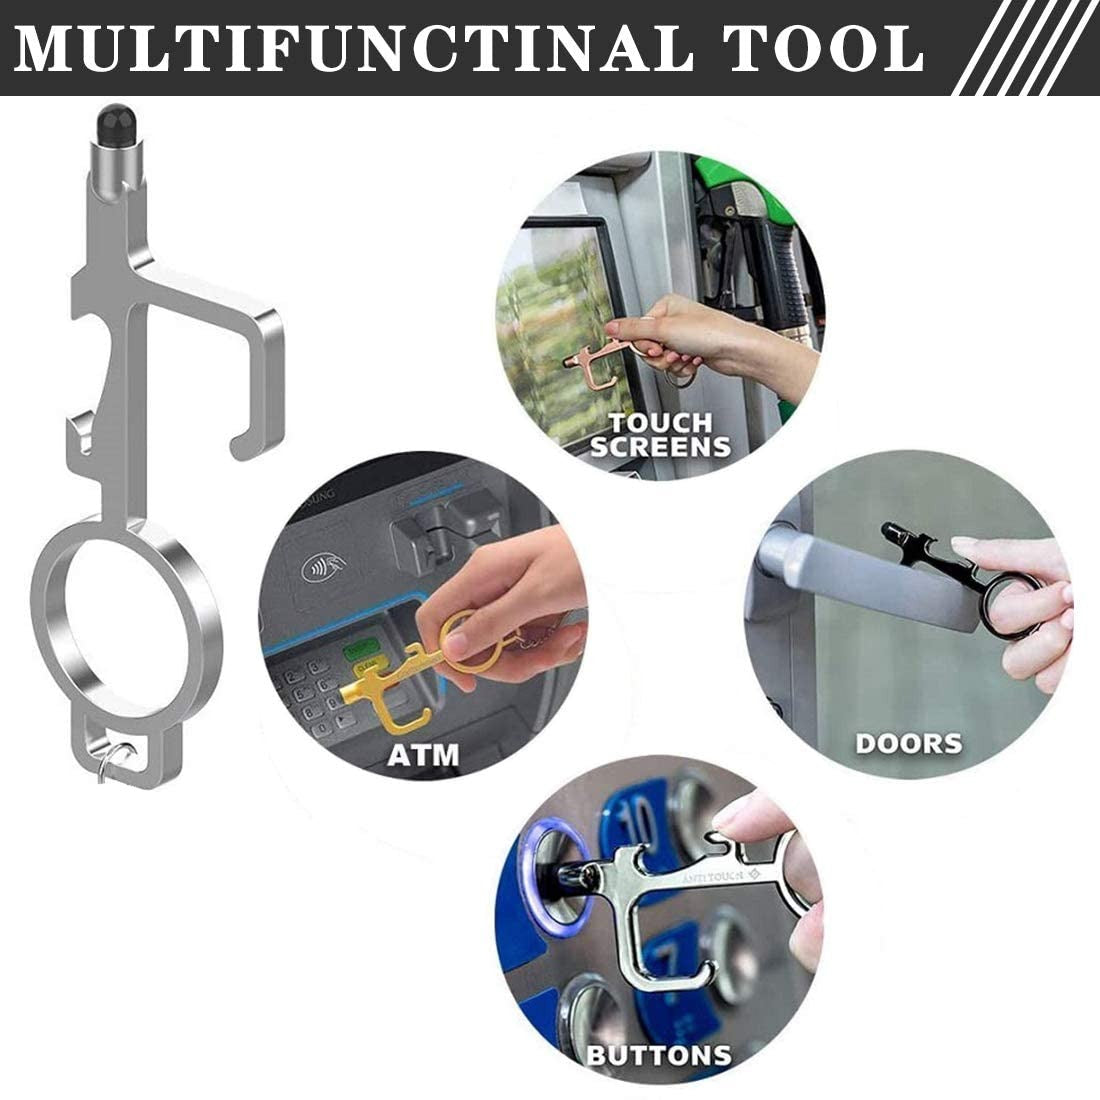 Contactless Protective Multi-Function Tool with Stretchable Carabiner Or Keychain